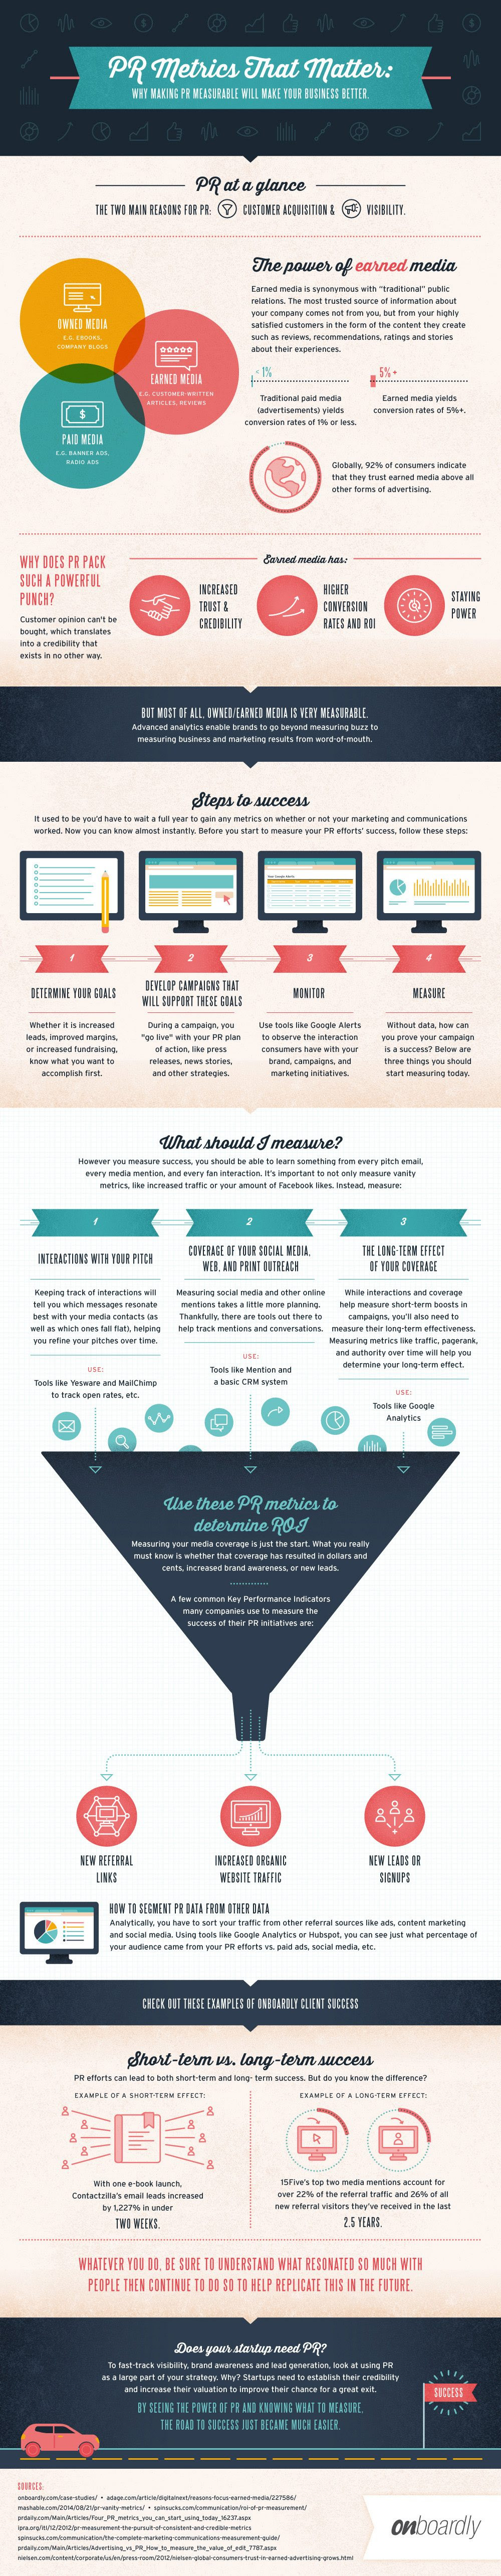 Press Releases (PR) Metrics That Matter - #infographic